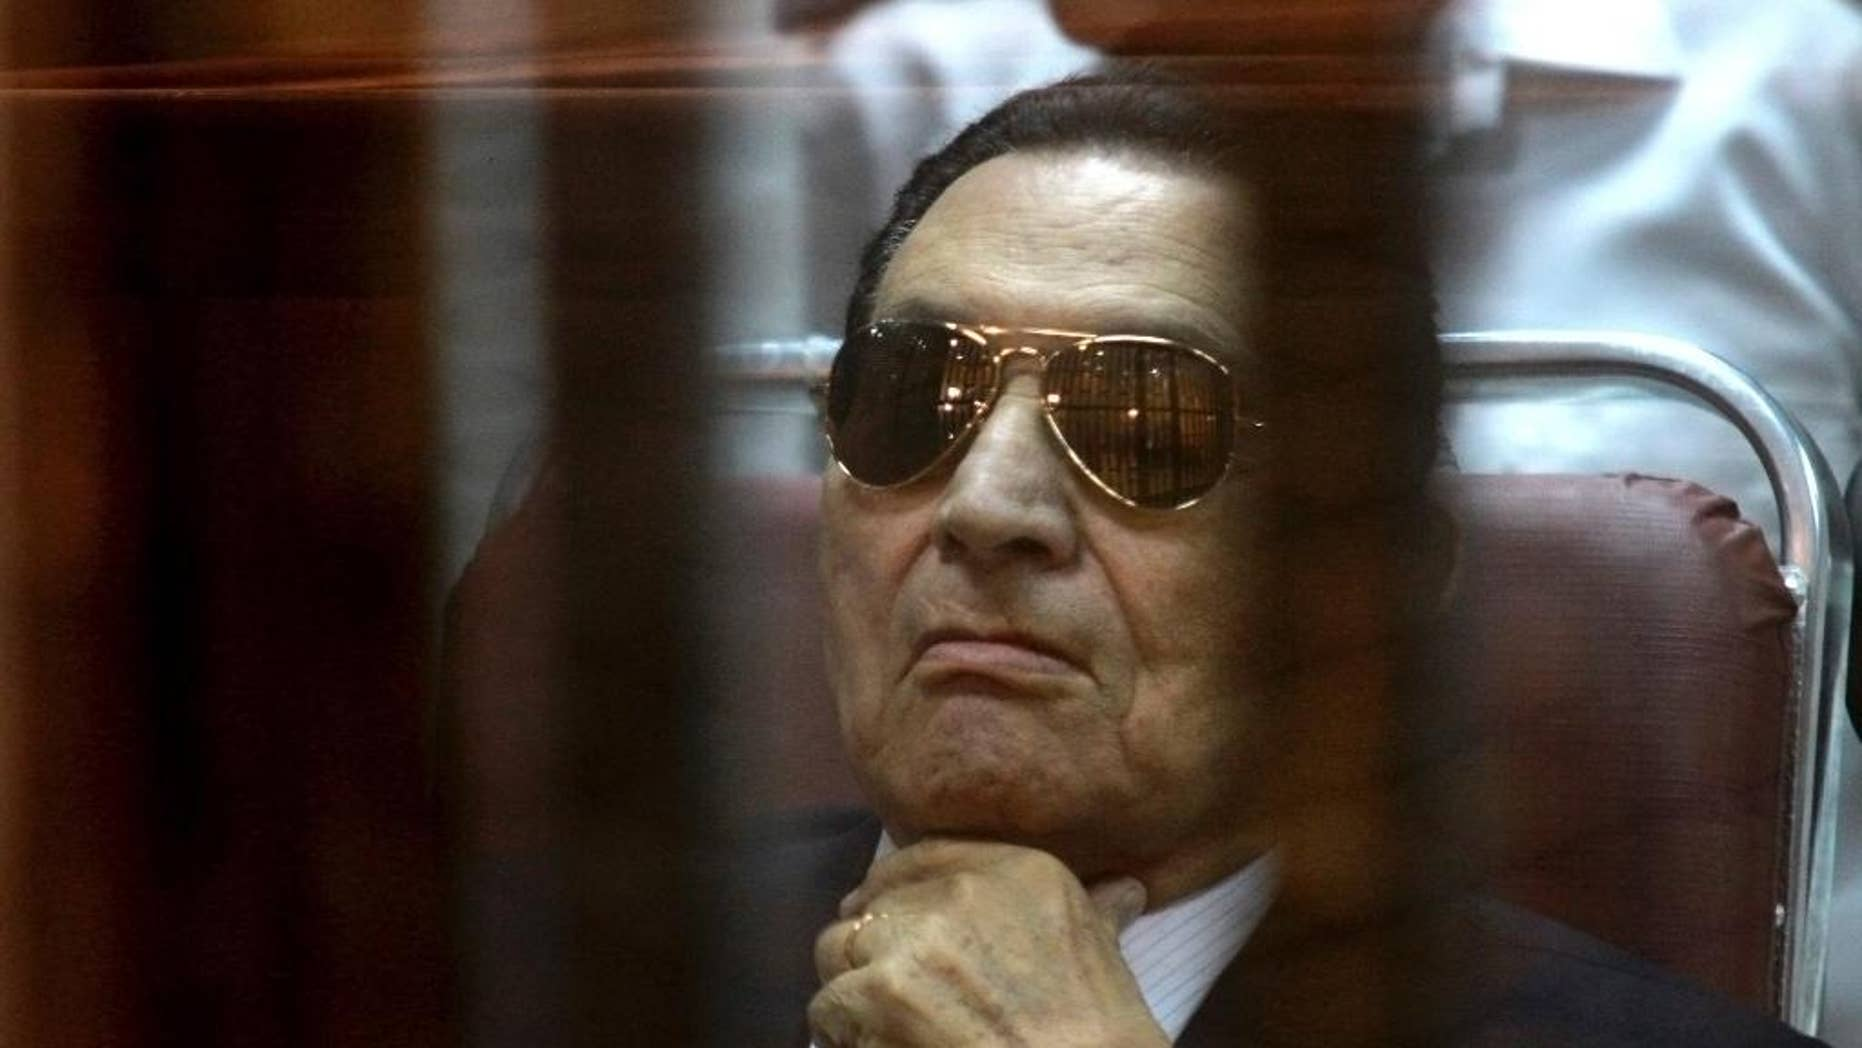 April 26, 2014: In this file photo, ousted Egyptian President Hosni Mubarak attends a hearing in his retrial over charges of failing to stop killings of protesters during the 2011 uprising that led to his downfall, in the  Police Academy-turned-court in the outskirts of Cairo, Egypt.  (AP)